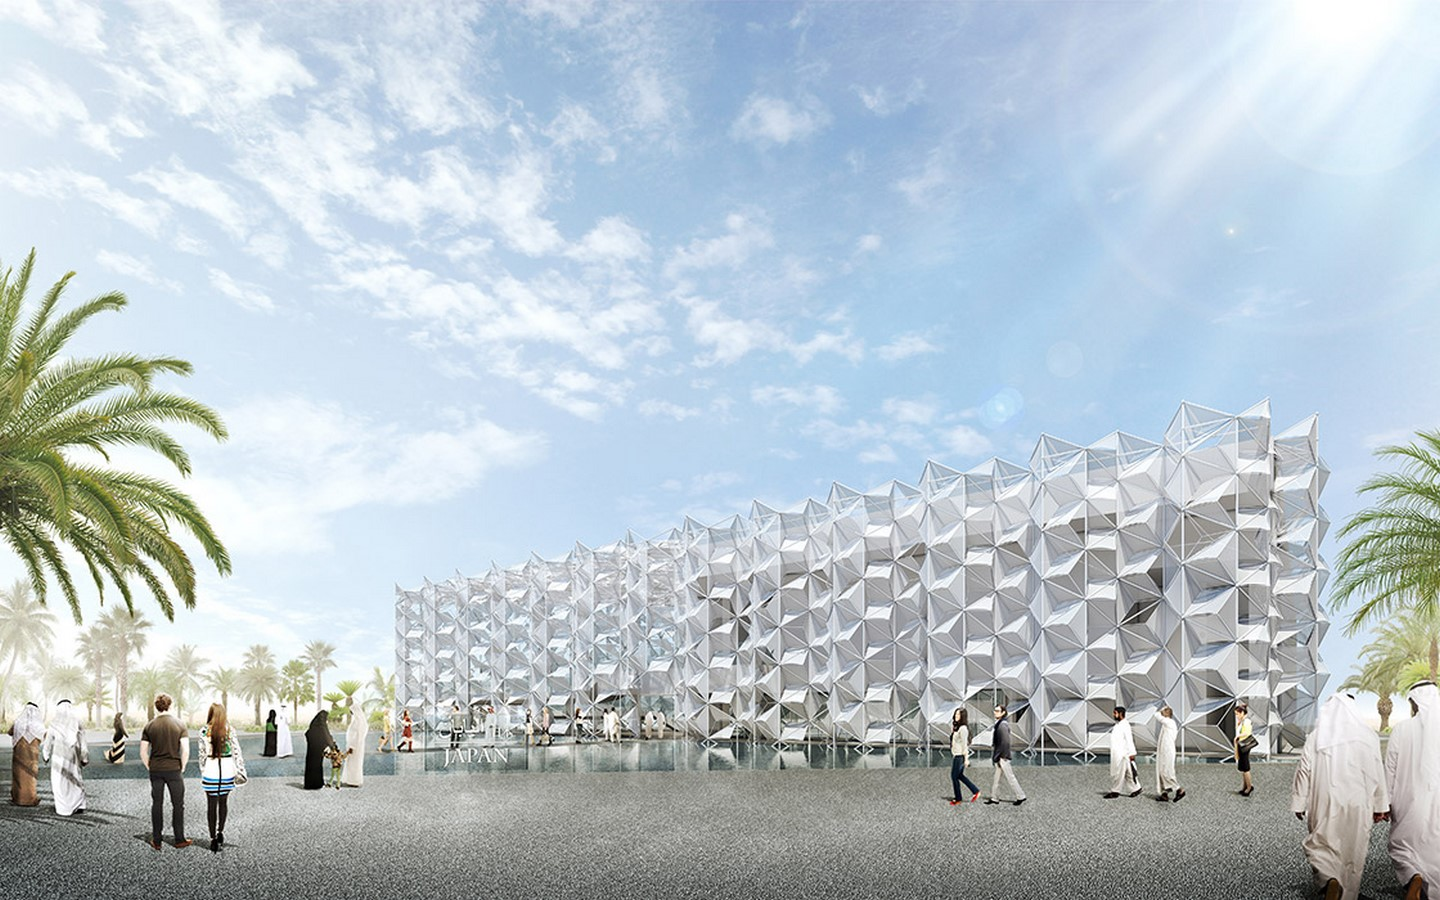 An Intricate Tridimensional Facade for Expo 2020 Dubai revealed by the Japan Pavilion - Sheet6